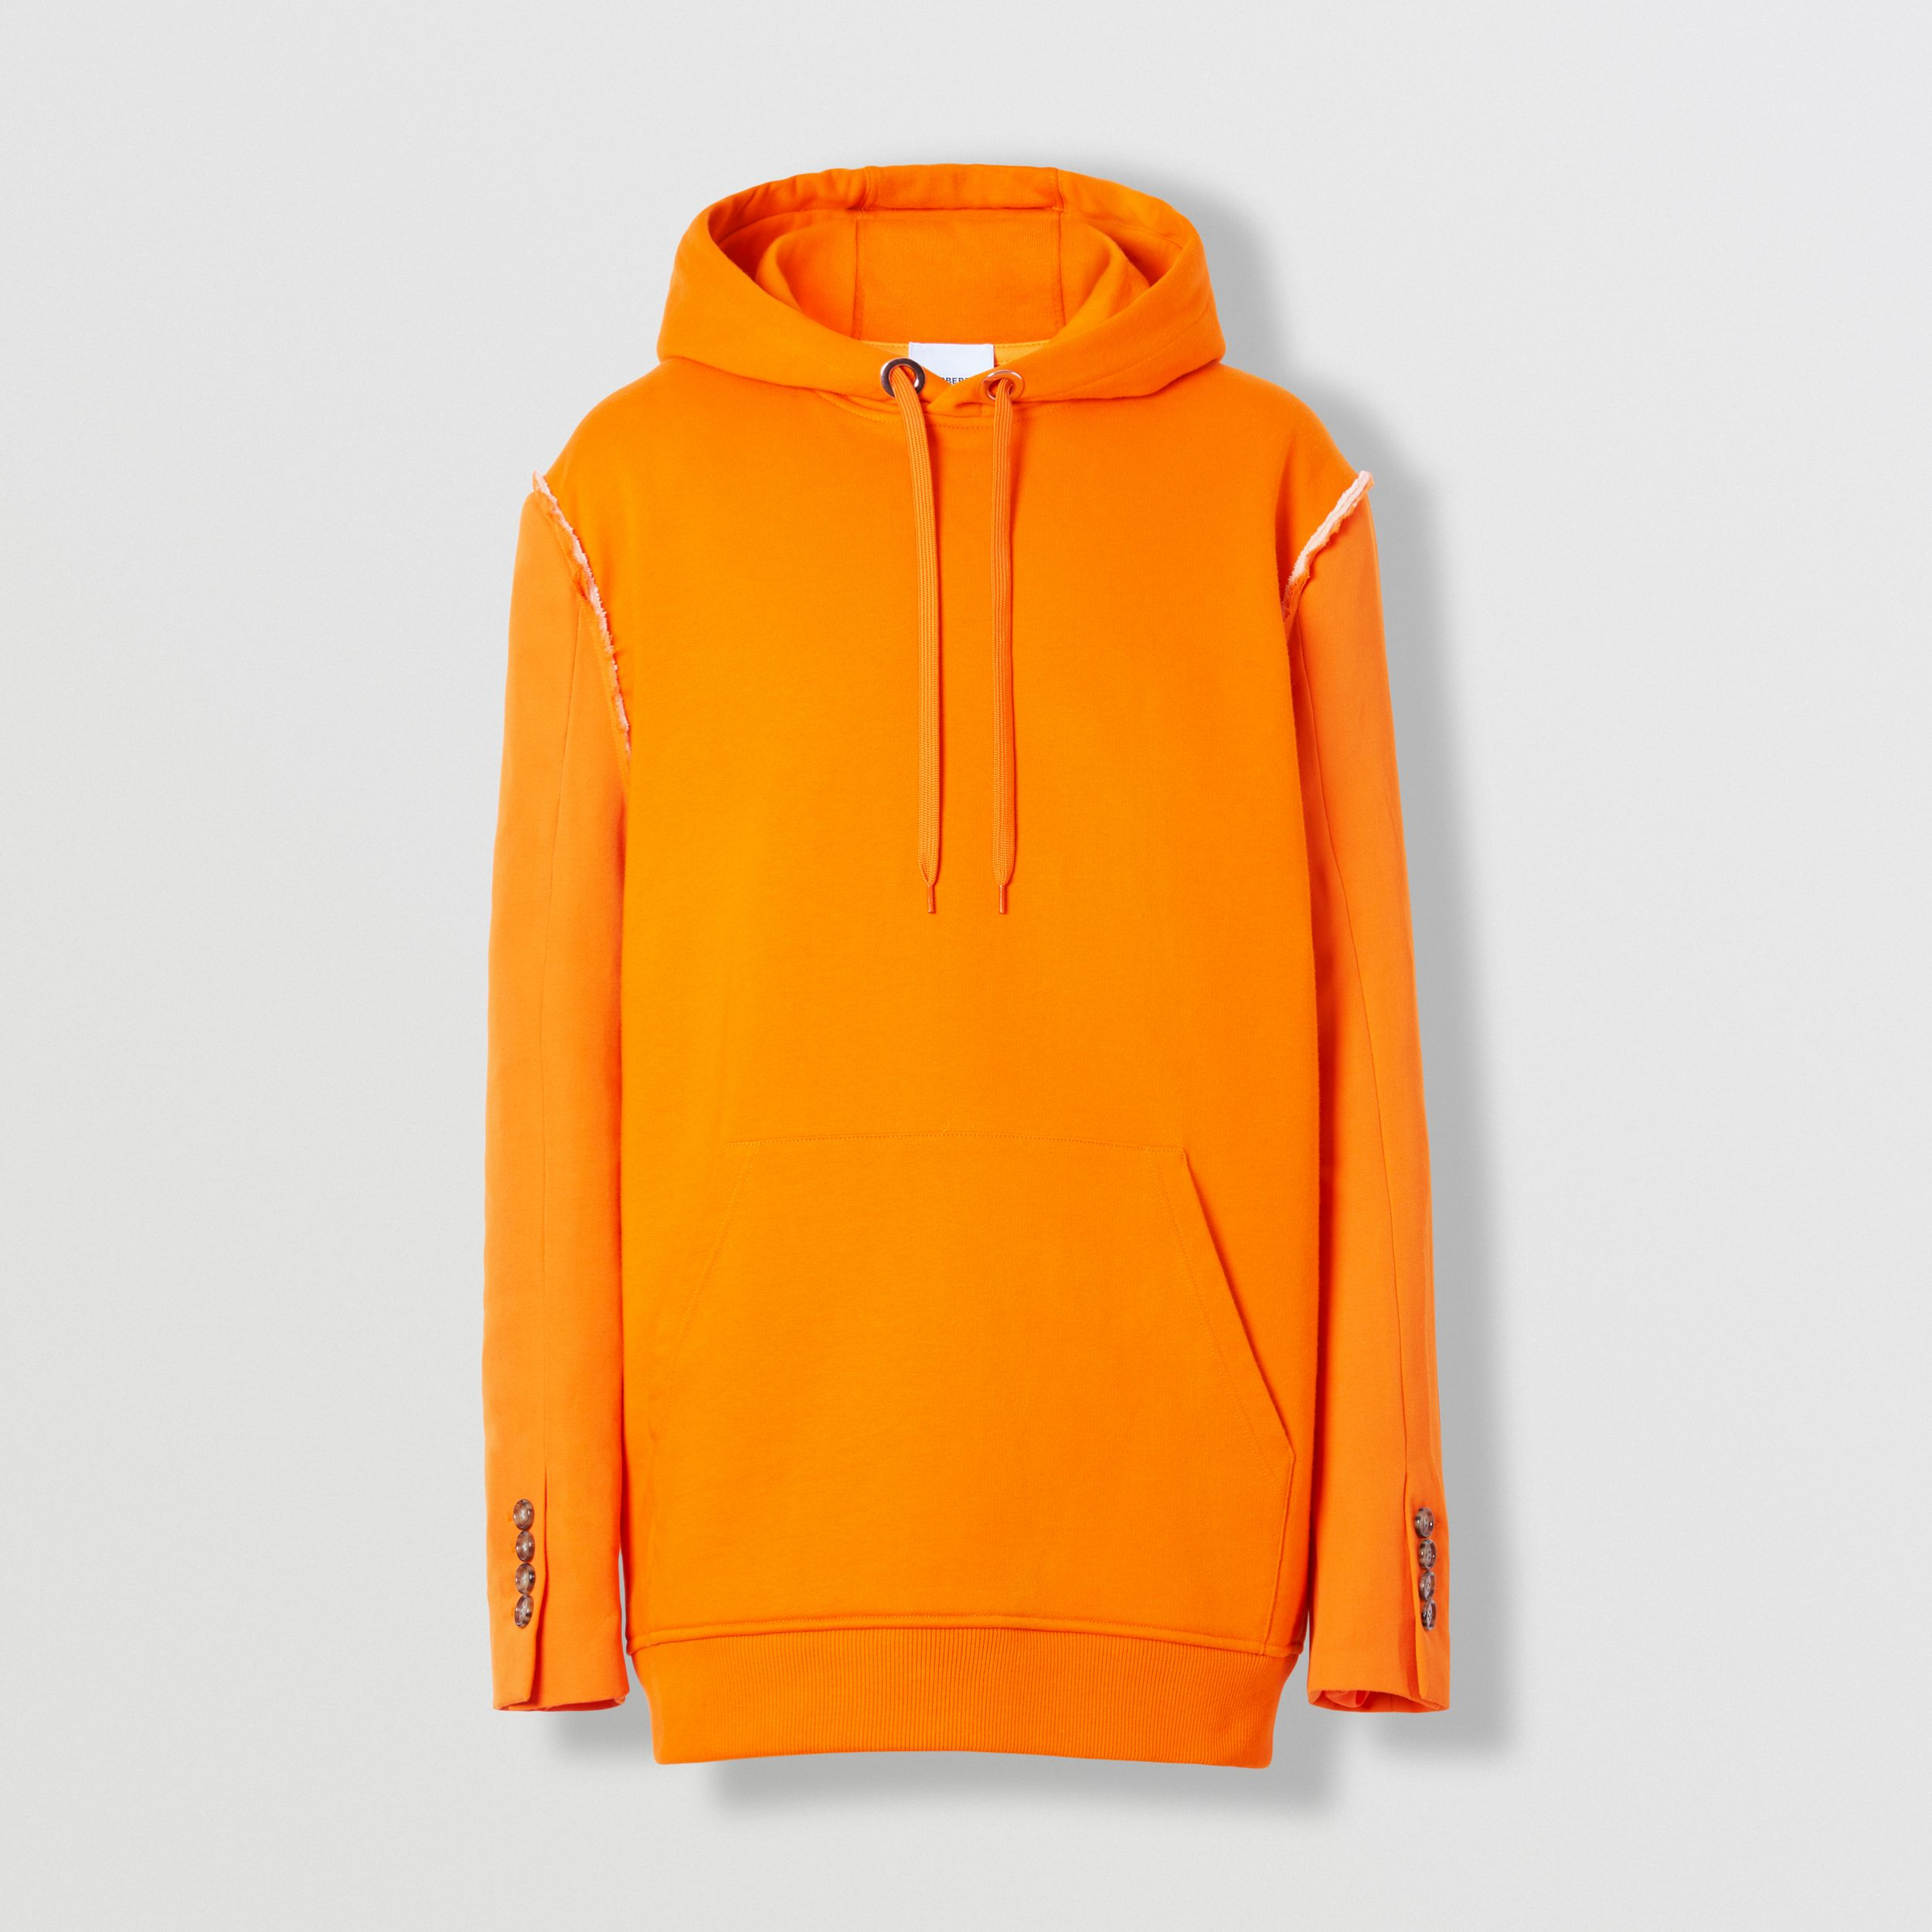 Cotton and Wool Reconstructed Hoodie in Deep Orange - Men | Burberry - 4